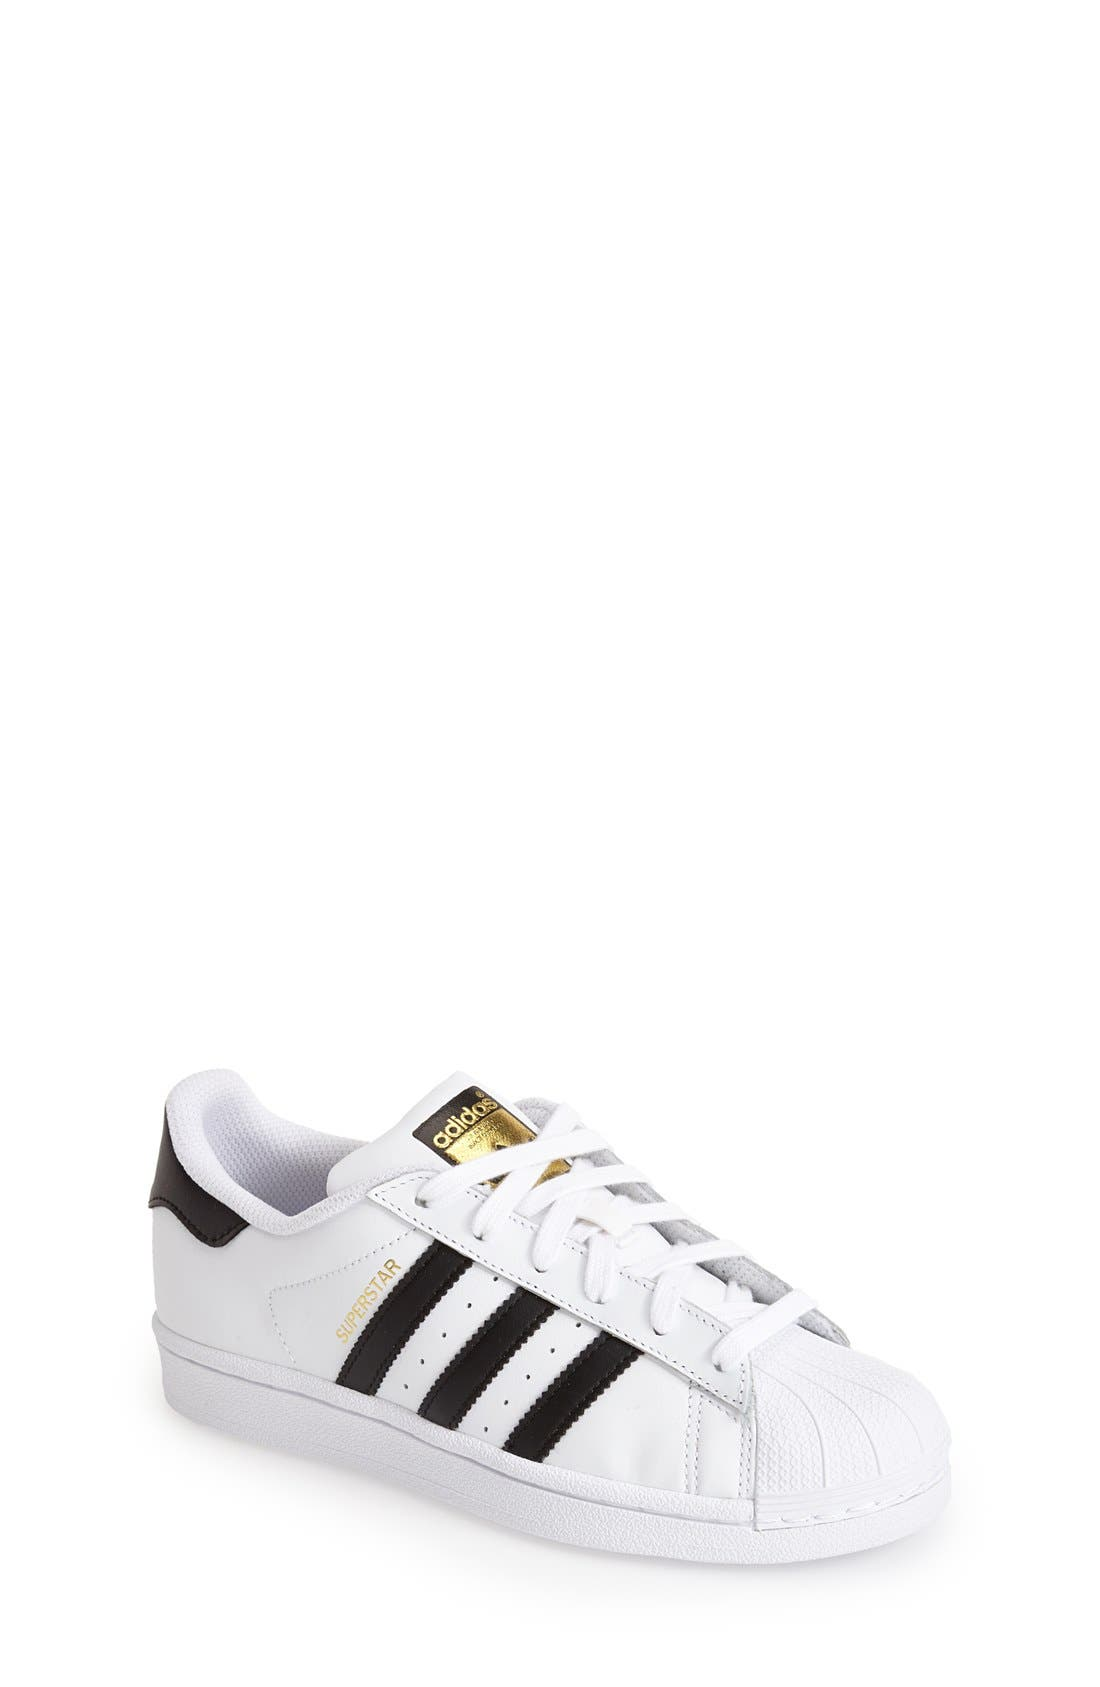 adidas \u0027Superstar II\u0027 Sneaker (Big Kid)